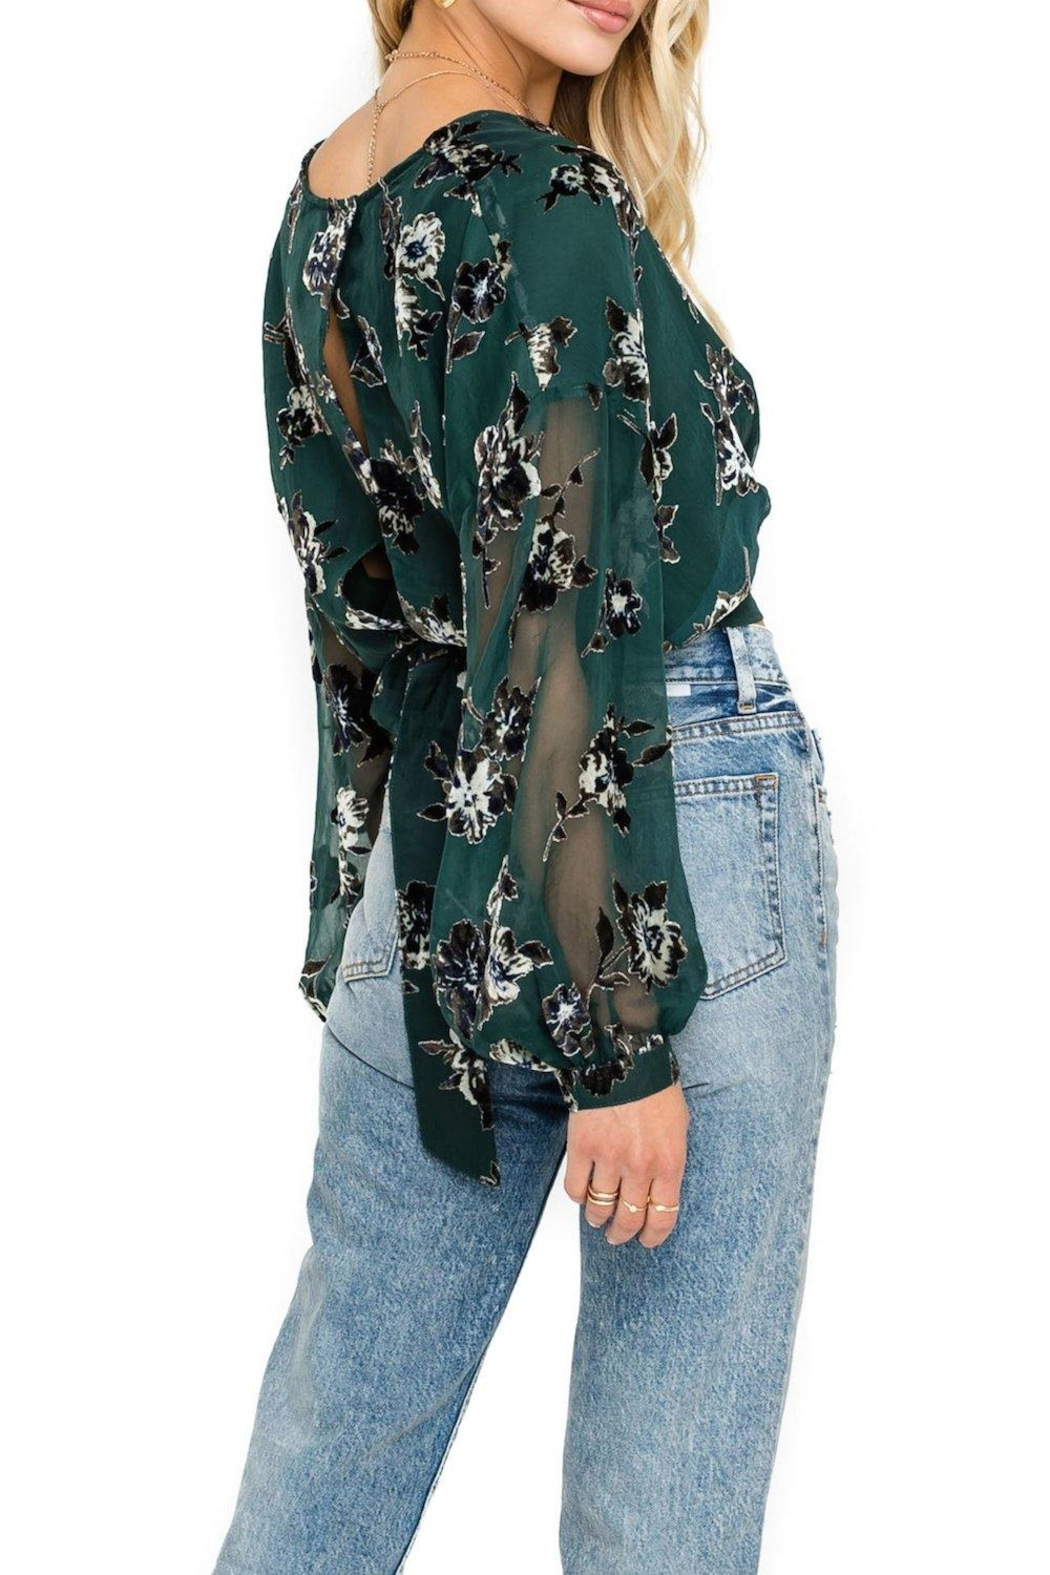 ASTR Green Floral Blouse - Front Full Image